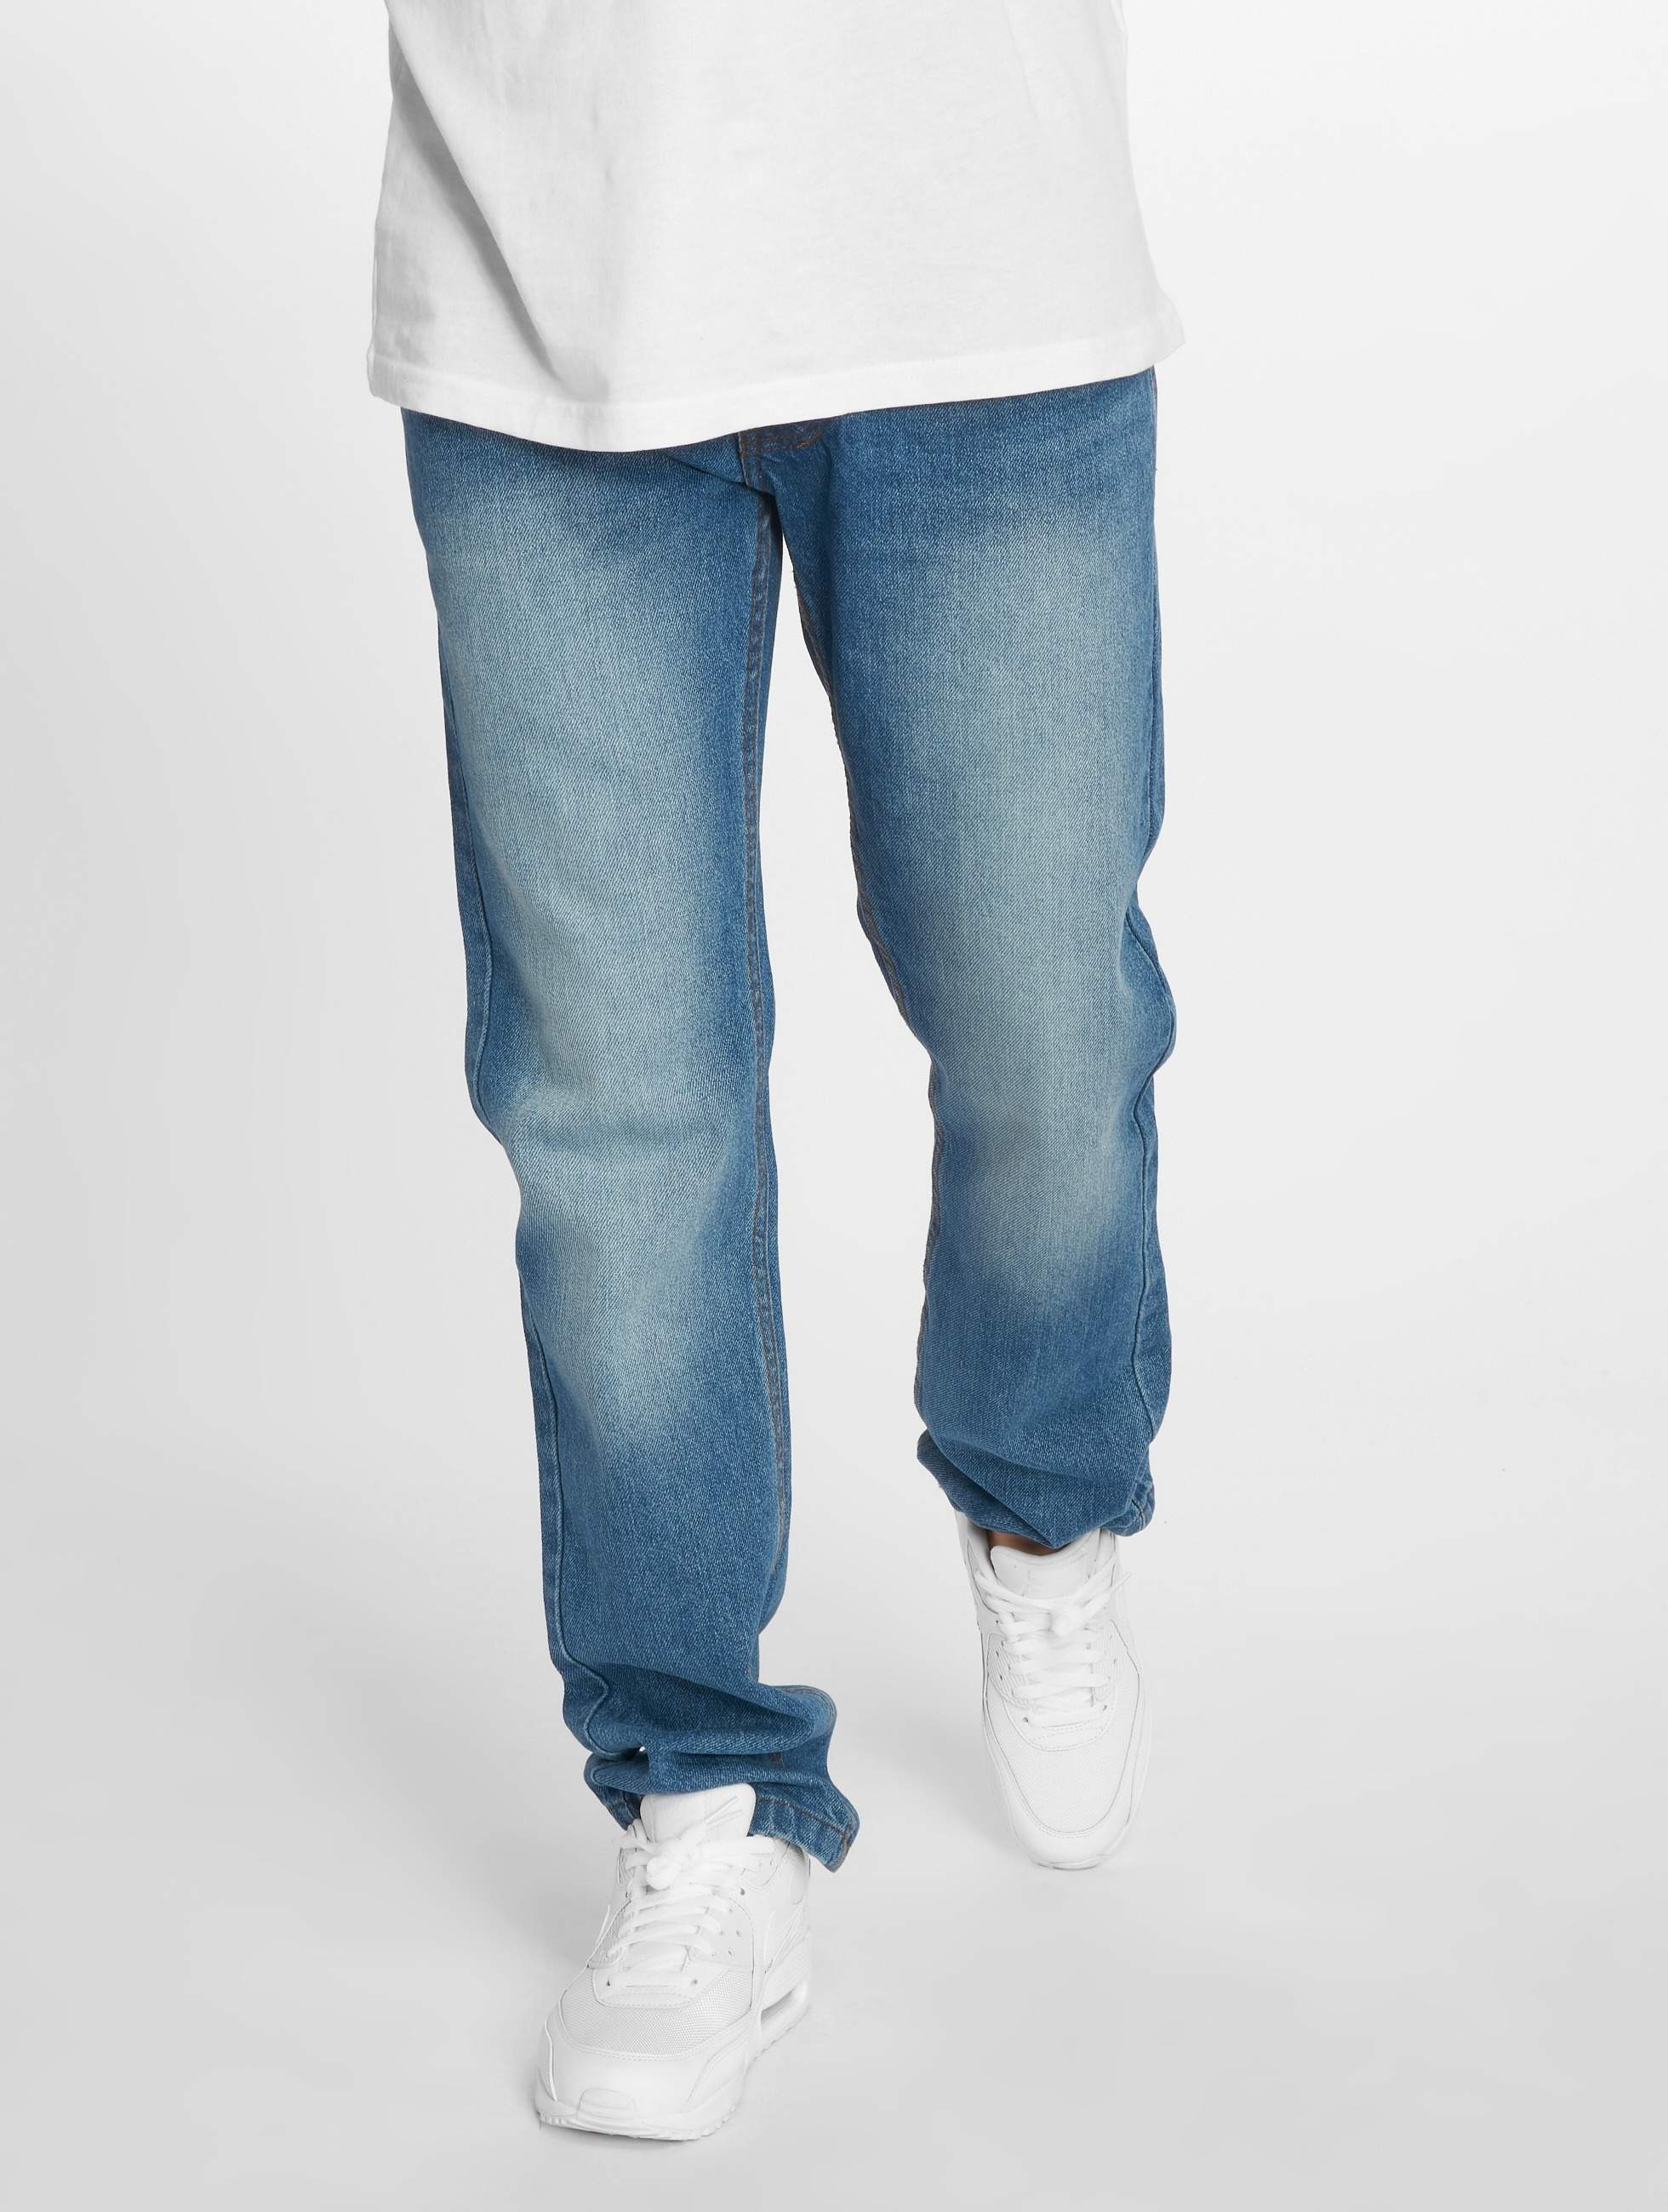 Rocawear / Straight Fit Jeans Moletro Leather Patch in blue W 32